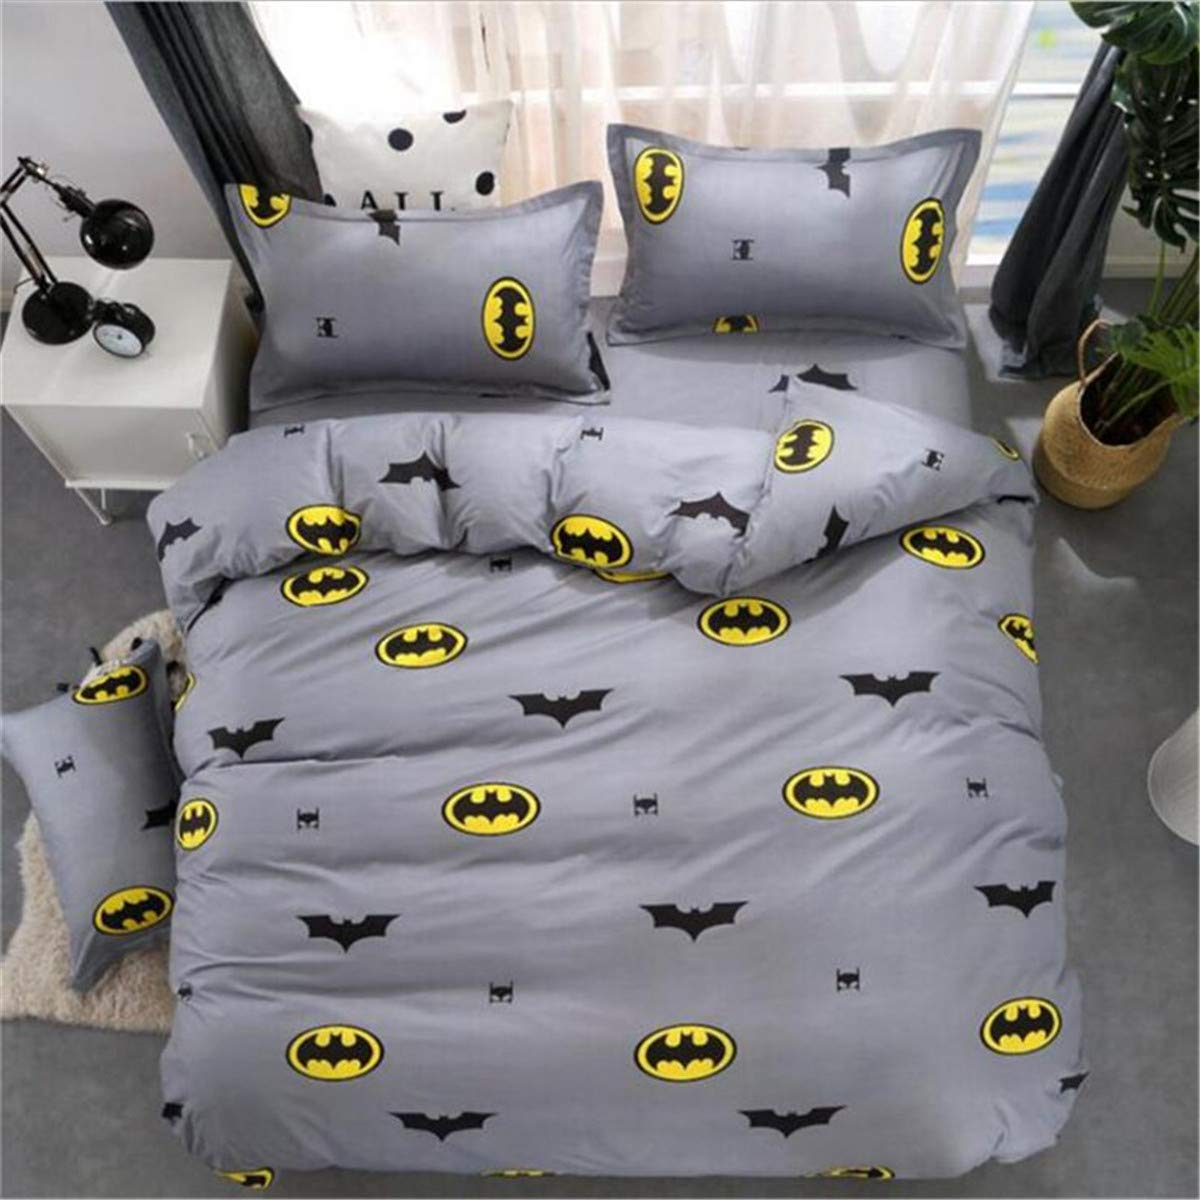 ZI TENG New Cartoon Batman Bedding Set Student Teenagers Love Duvet Cover 3PC100% Polyester Bed Set1Duvet Cover,2Pillowcases,Twin Full Queen Size